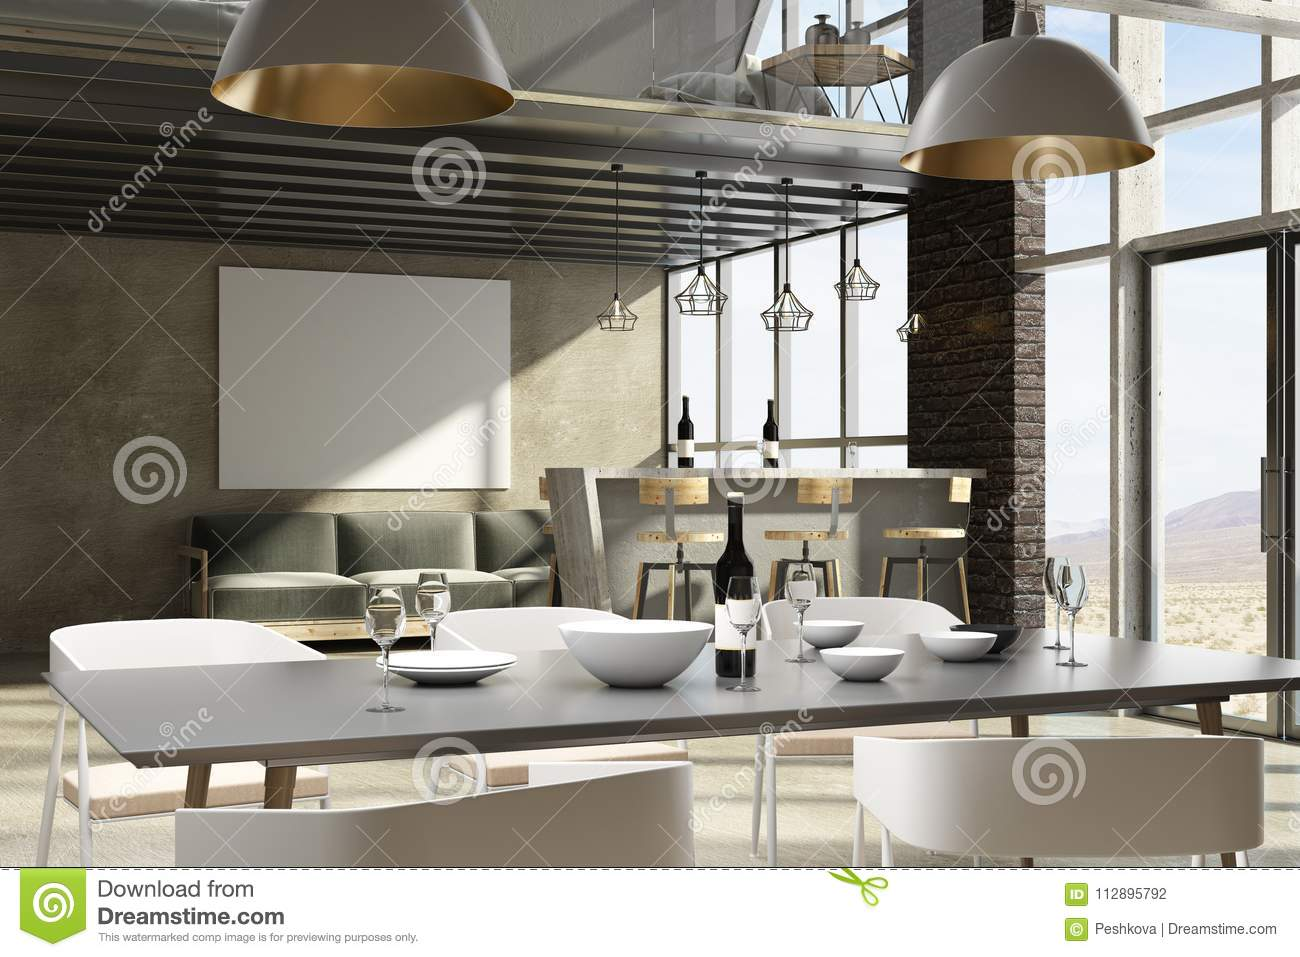 contemporary loft furniture. Contemporary Loft Living Room/ Restaurant Interior With Furniture, Landscape View And Empty Banner. 3D Rendering Furniture N